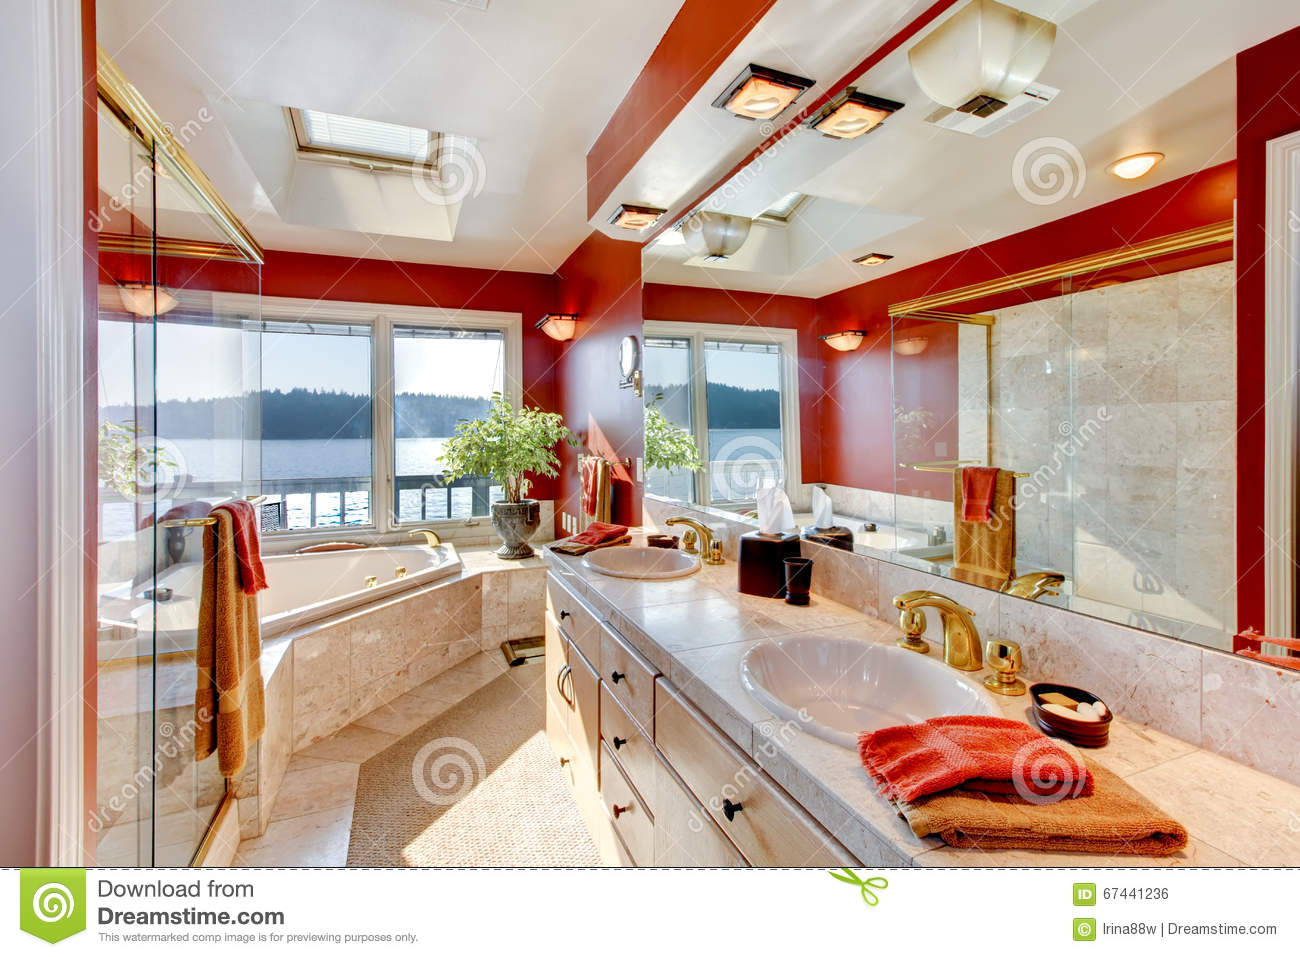 Red And Marble Interior Of Large Luxury Master Bathroom With Glass